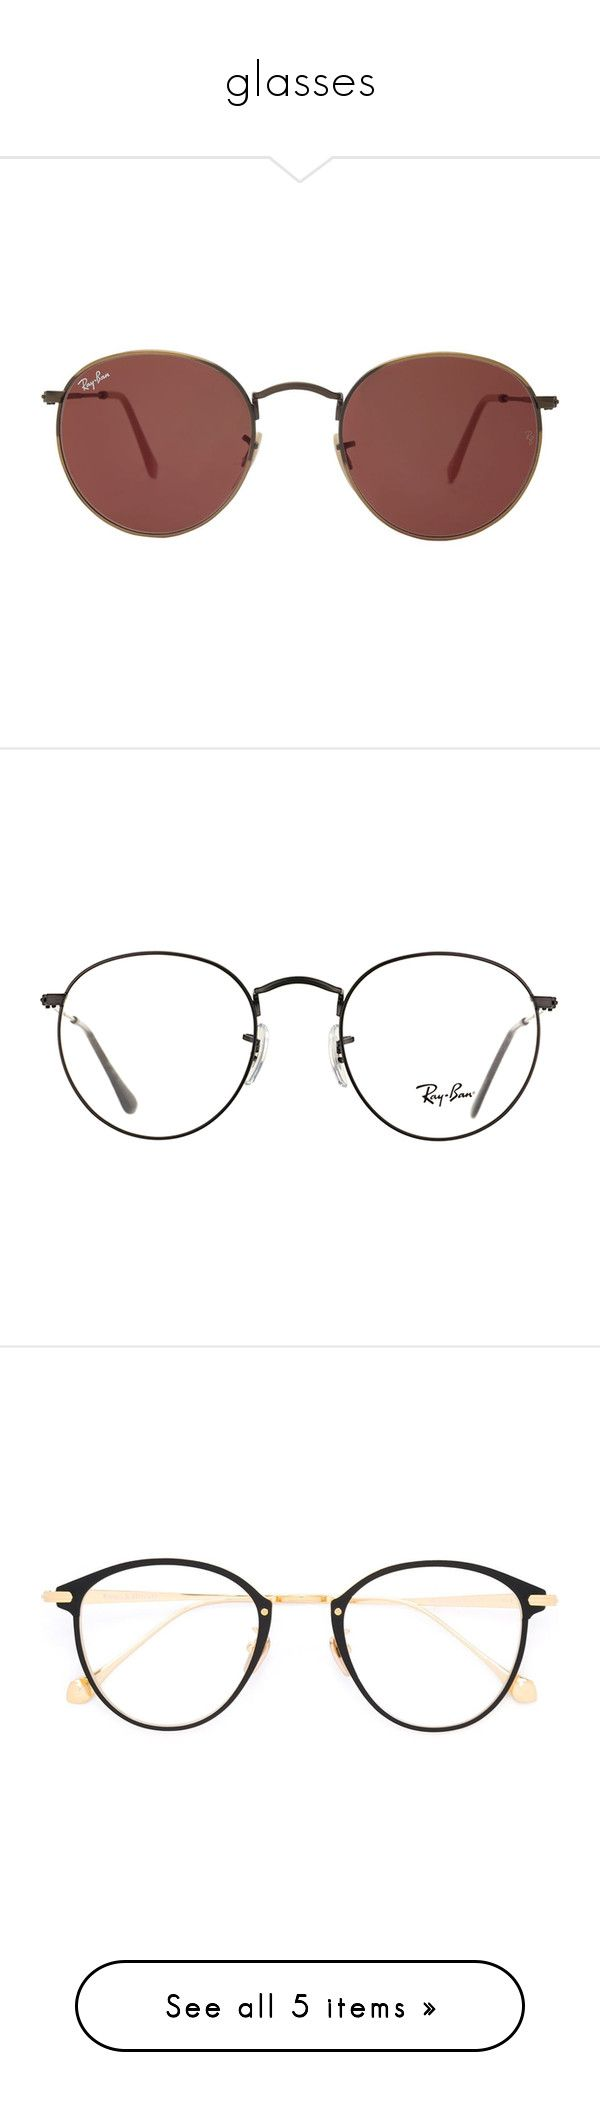 """""""glasses"""" by julianaunicors on Polyvore featuring accessories, eyewear, sunglasses, glasses, jewelry, round frame sunglasses, gold lens sunglasses, gold round sunglasses, gold glasses e vintage round sunglasses"""